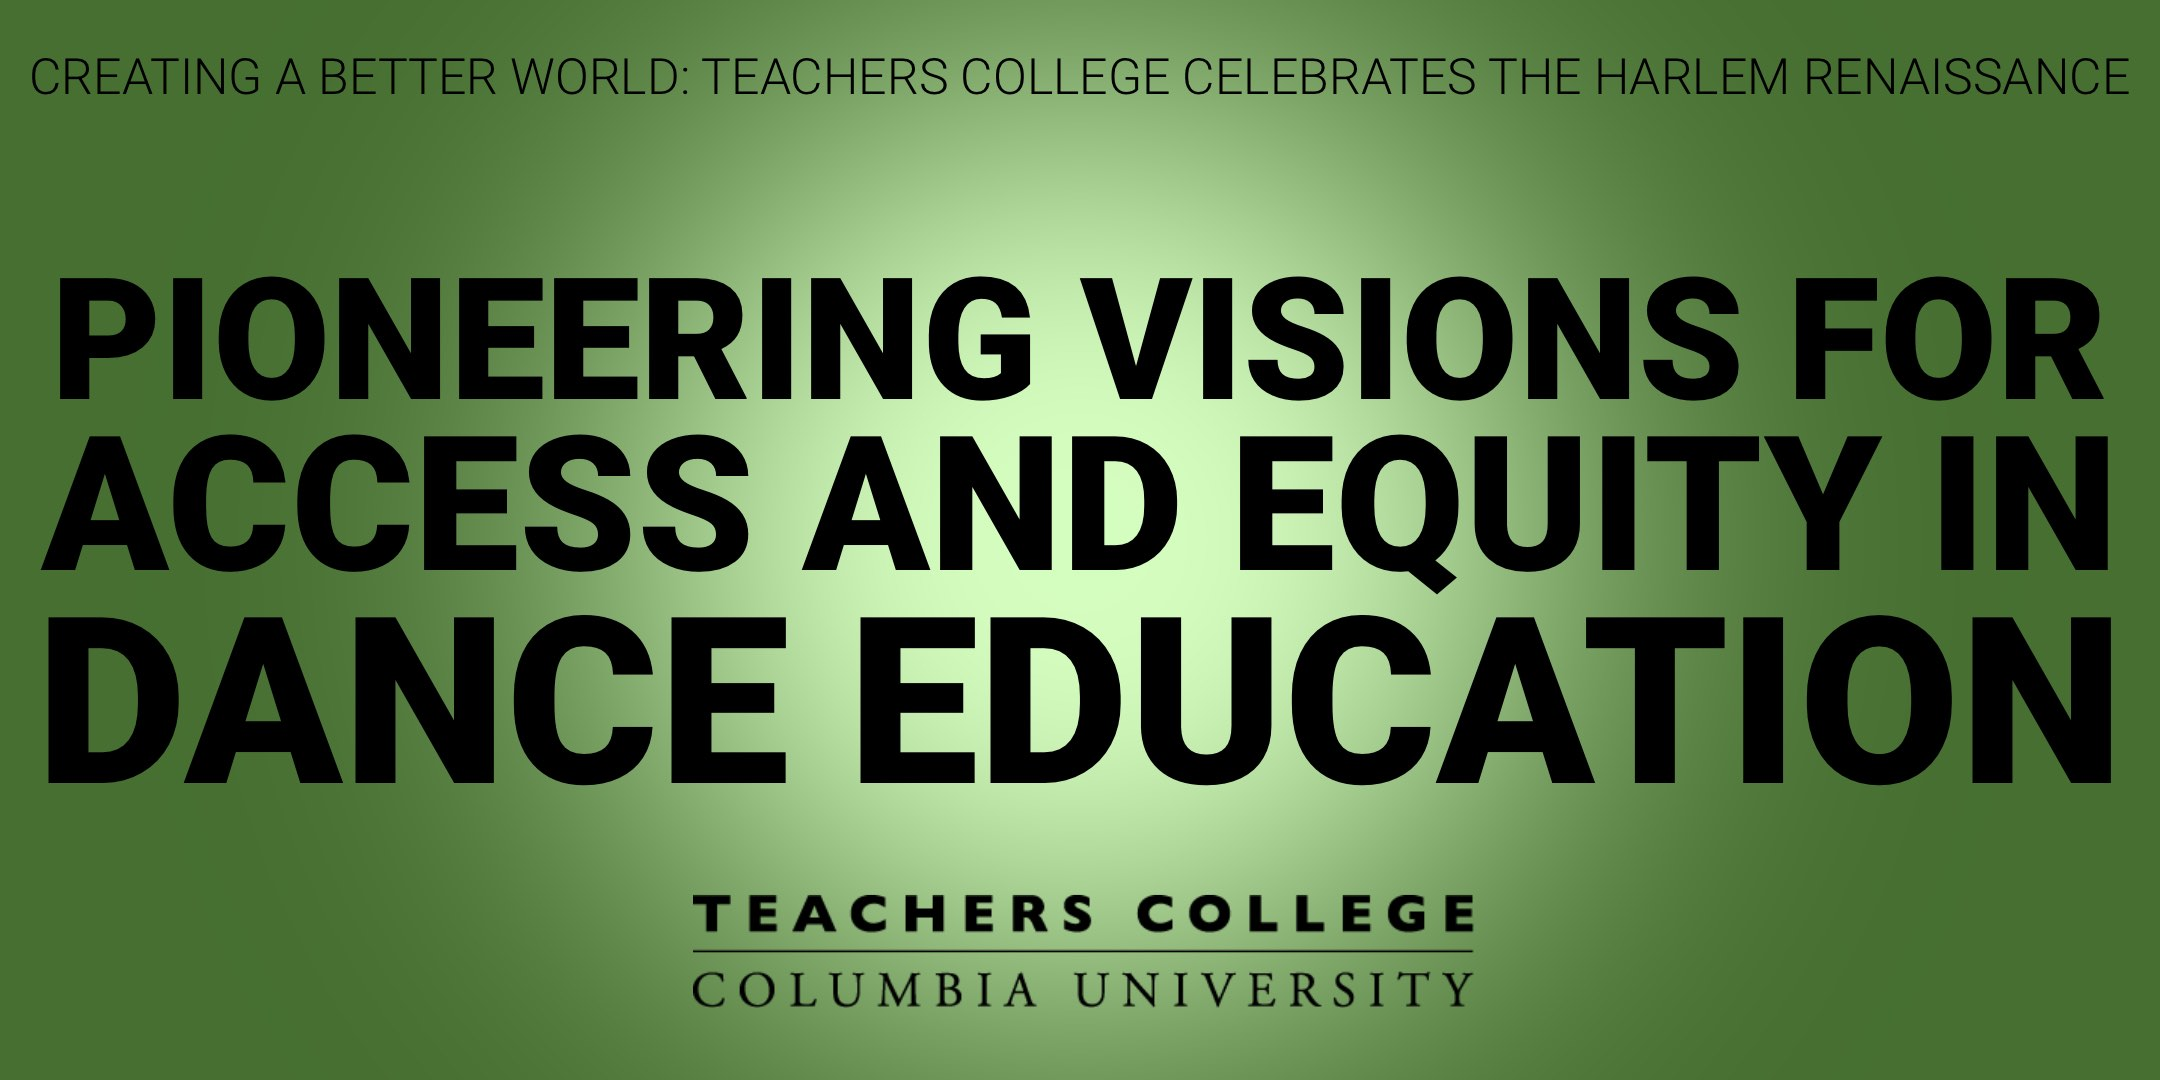 Pioneering Visions for Access and Equity in Dance Education